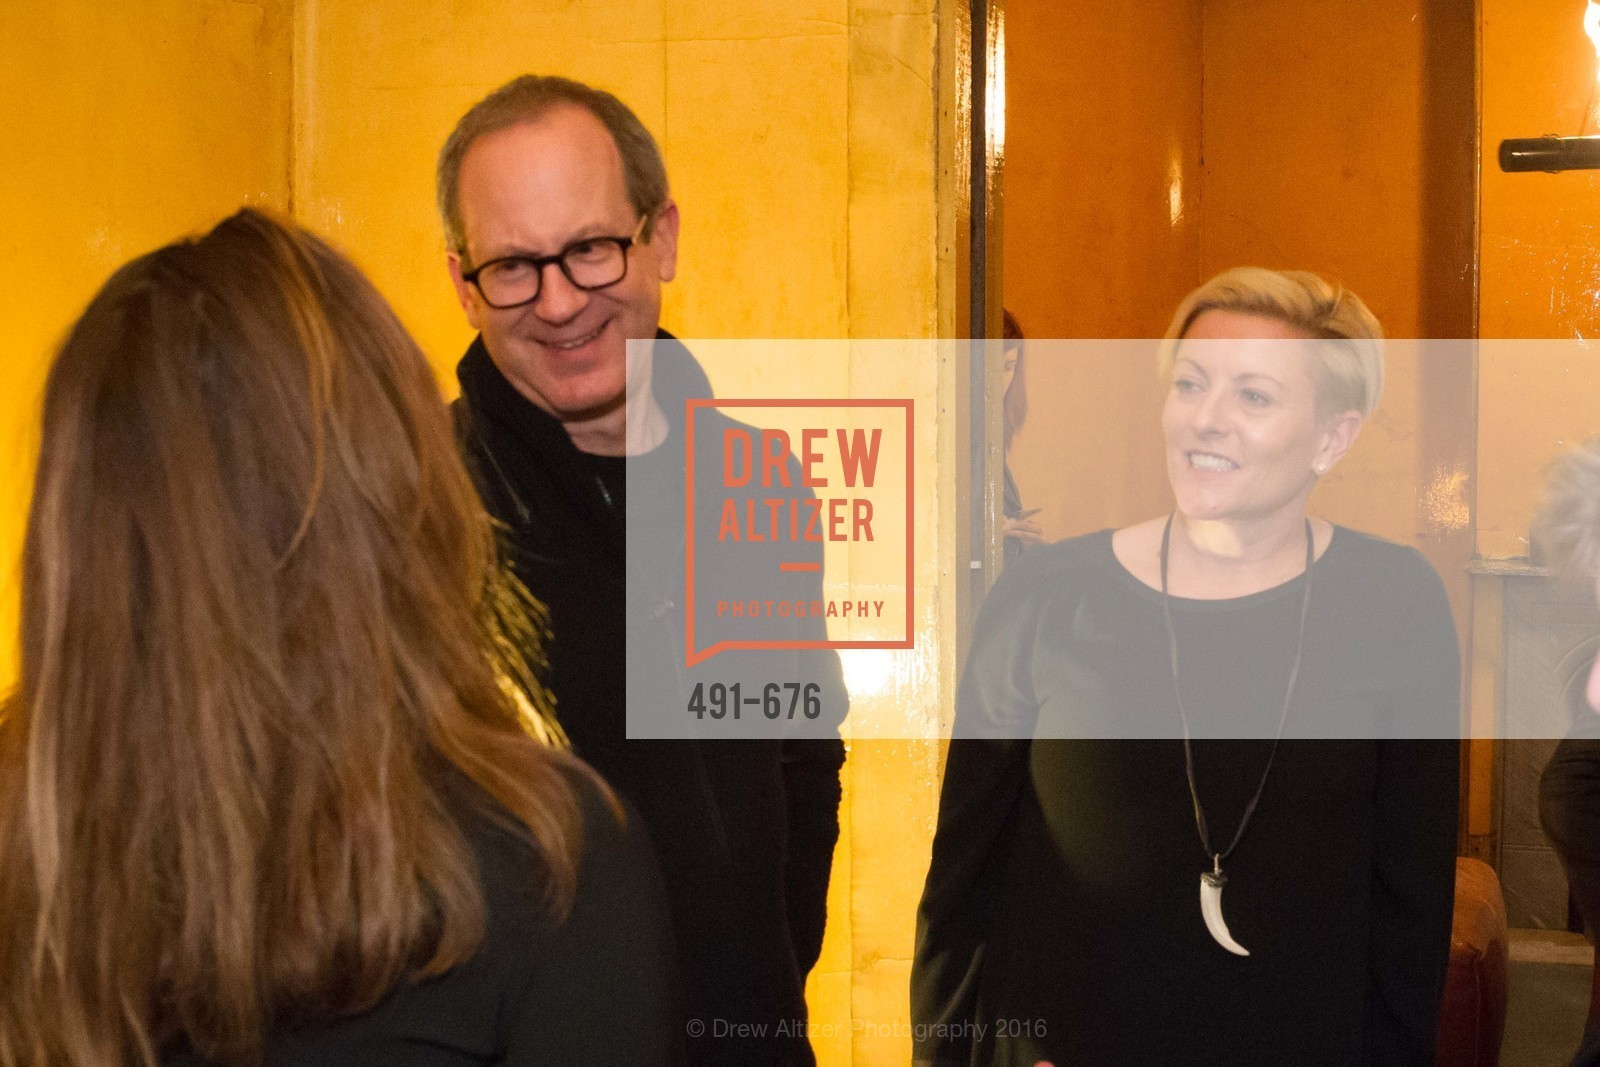 Mark Jensen, Carlie Wilmans, 500 Capp Street Preview Reception, 500 Capp Street Foundation. 500 Capp Street, January 7th, 2016,Drew Altizer, Drew Altizer Photography, full-service agency, private events, San Francisco photographer, photographer california